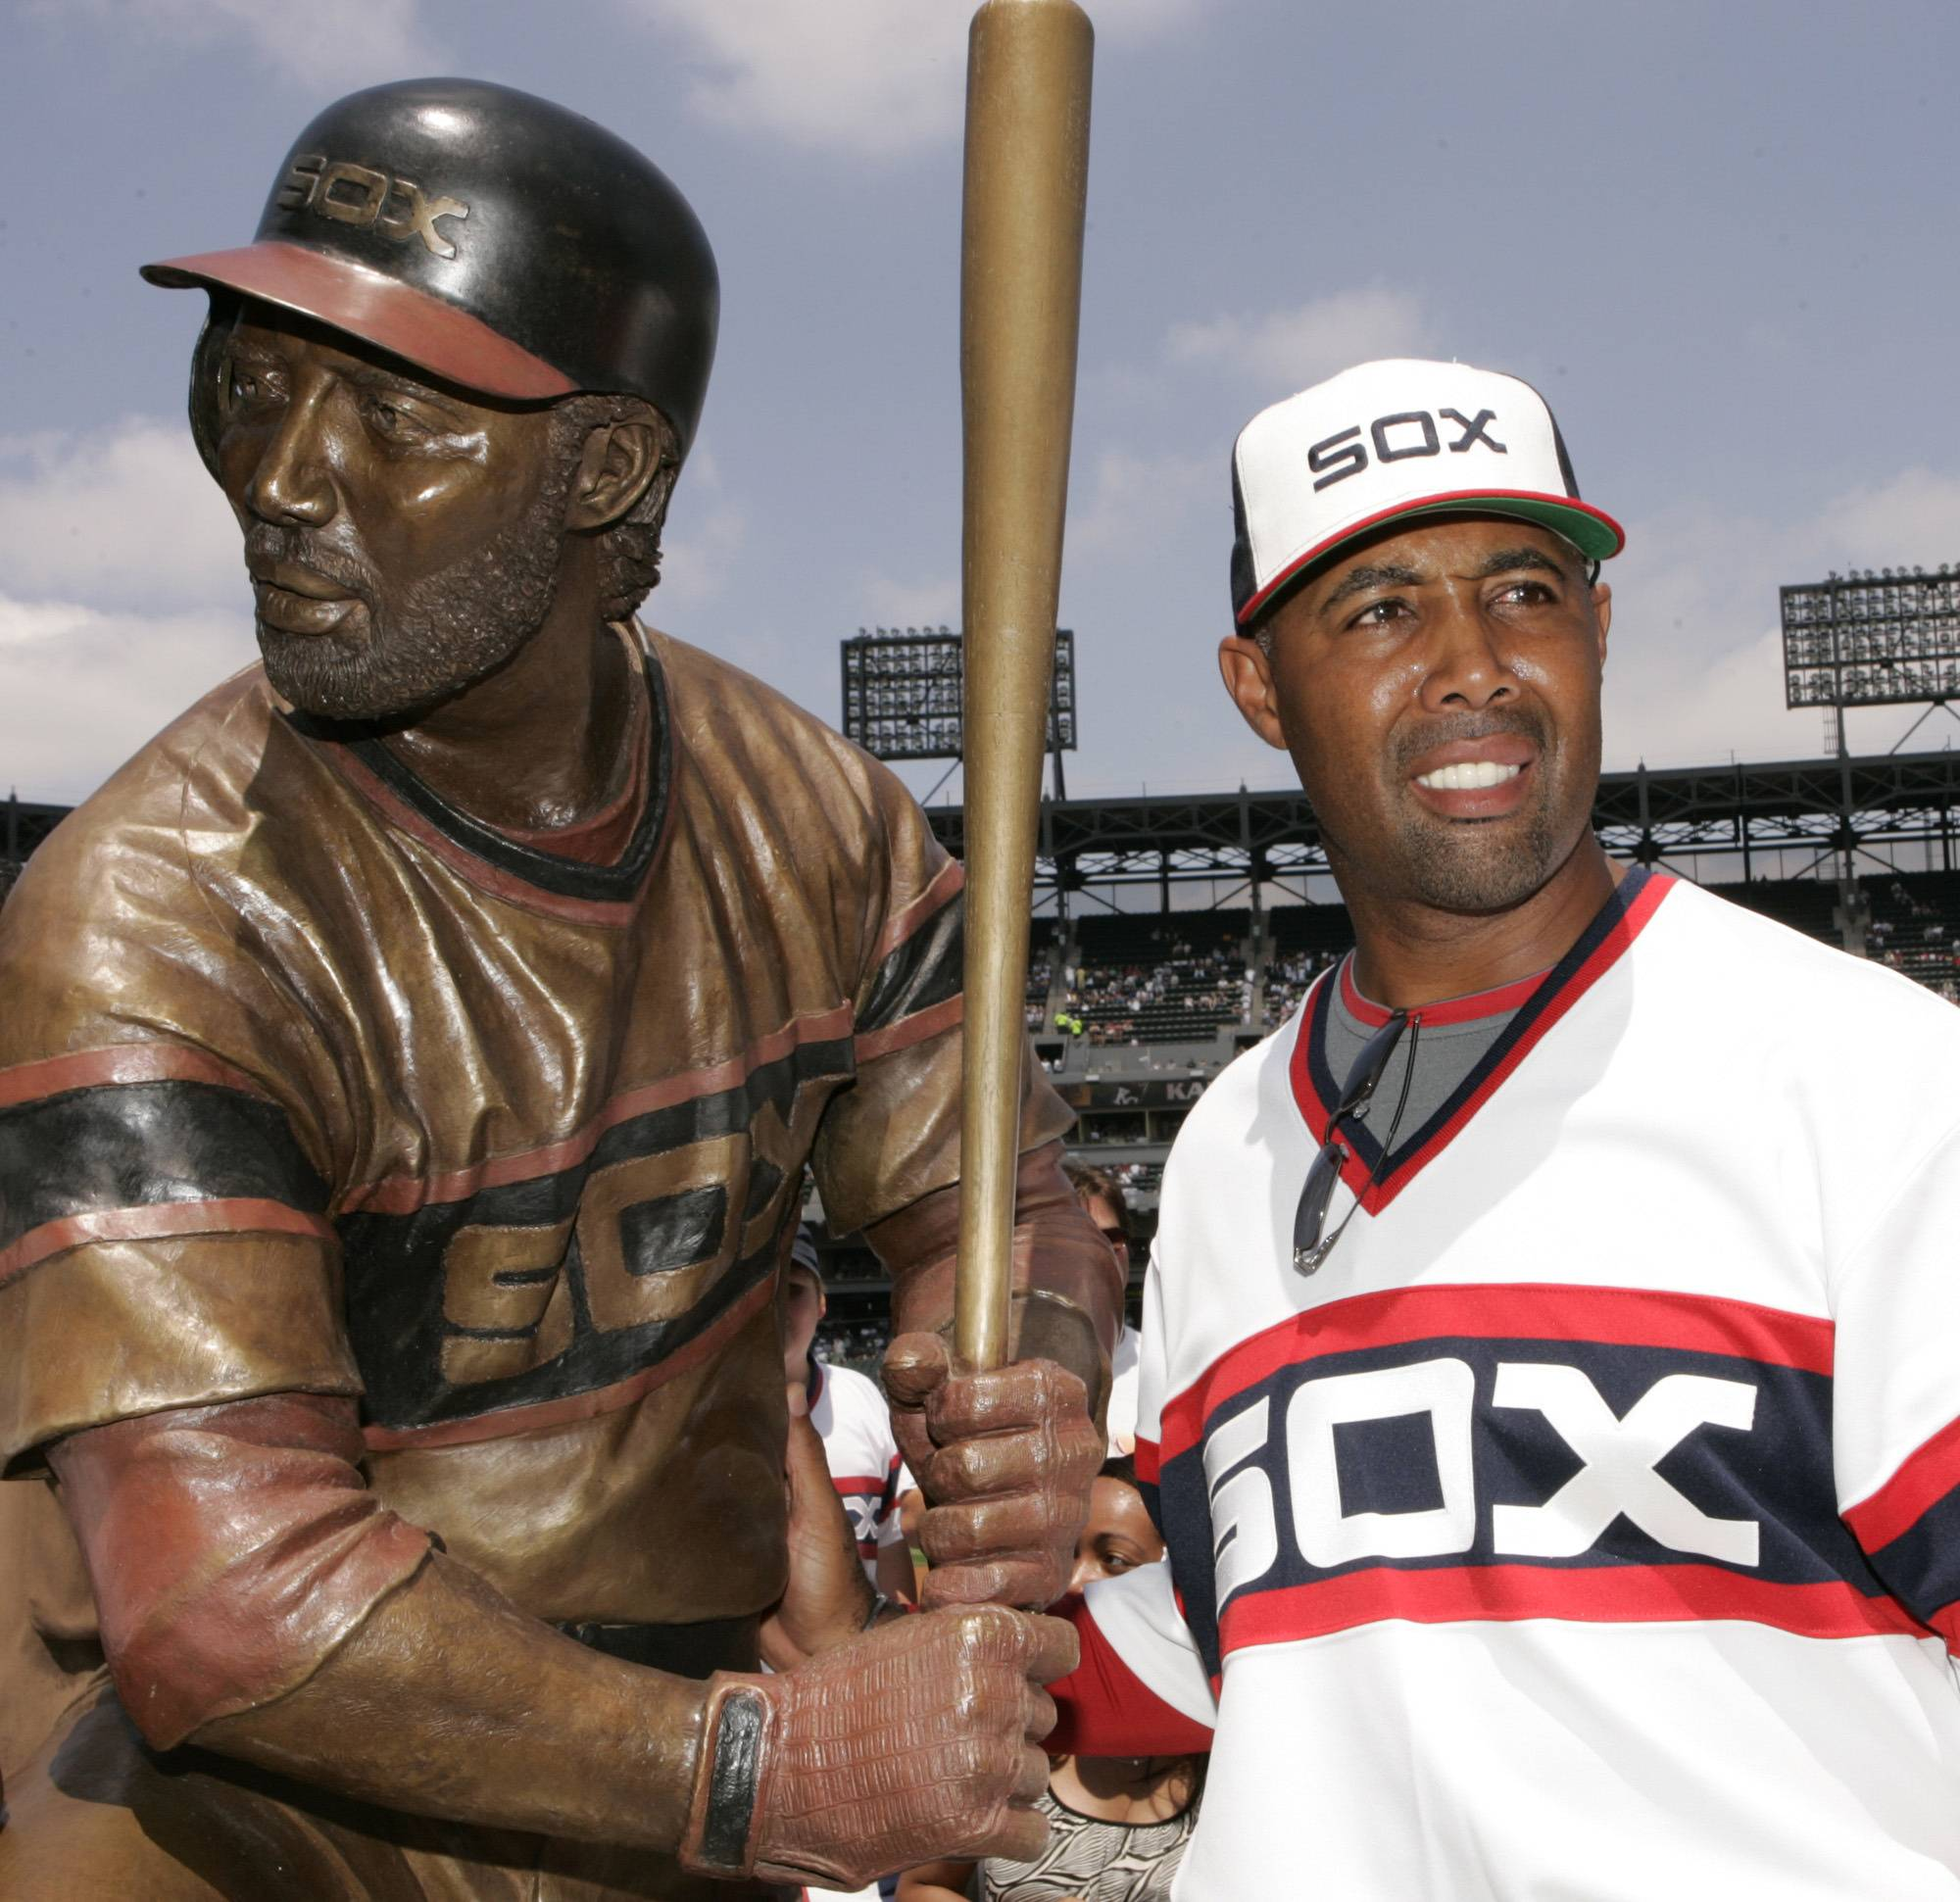 Chicago White Sox first base coach Harold Baines poses with his life-size sculpture during a ceremony before a game in Chicago in 2008.